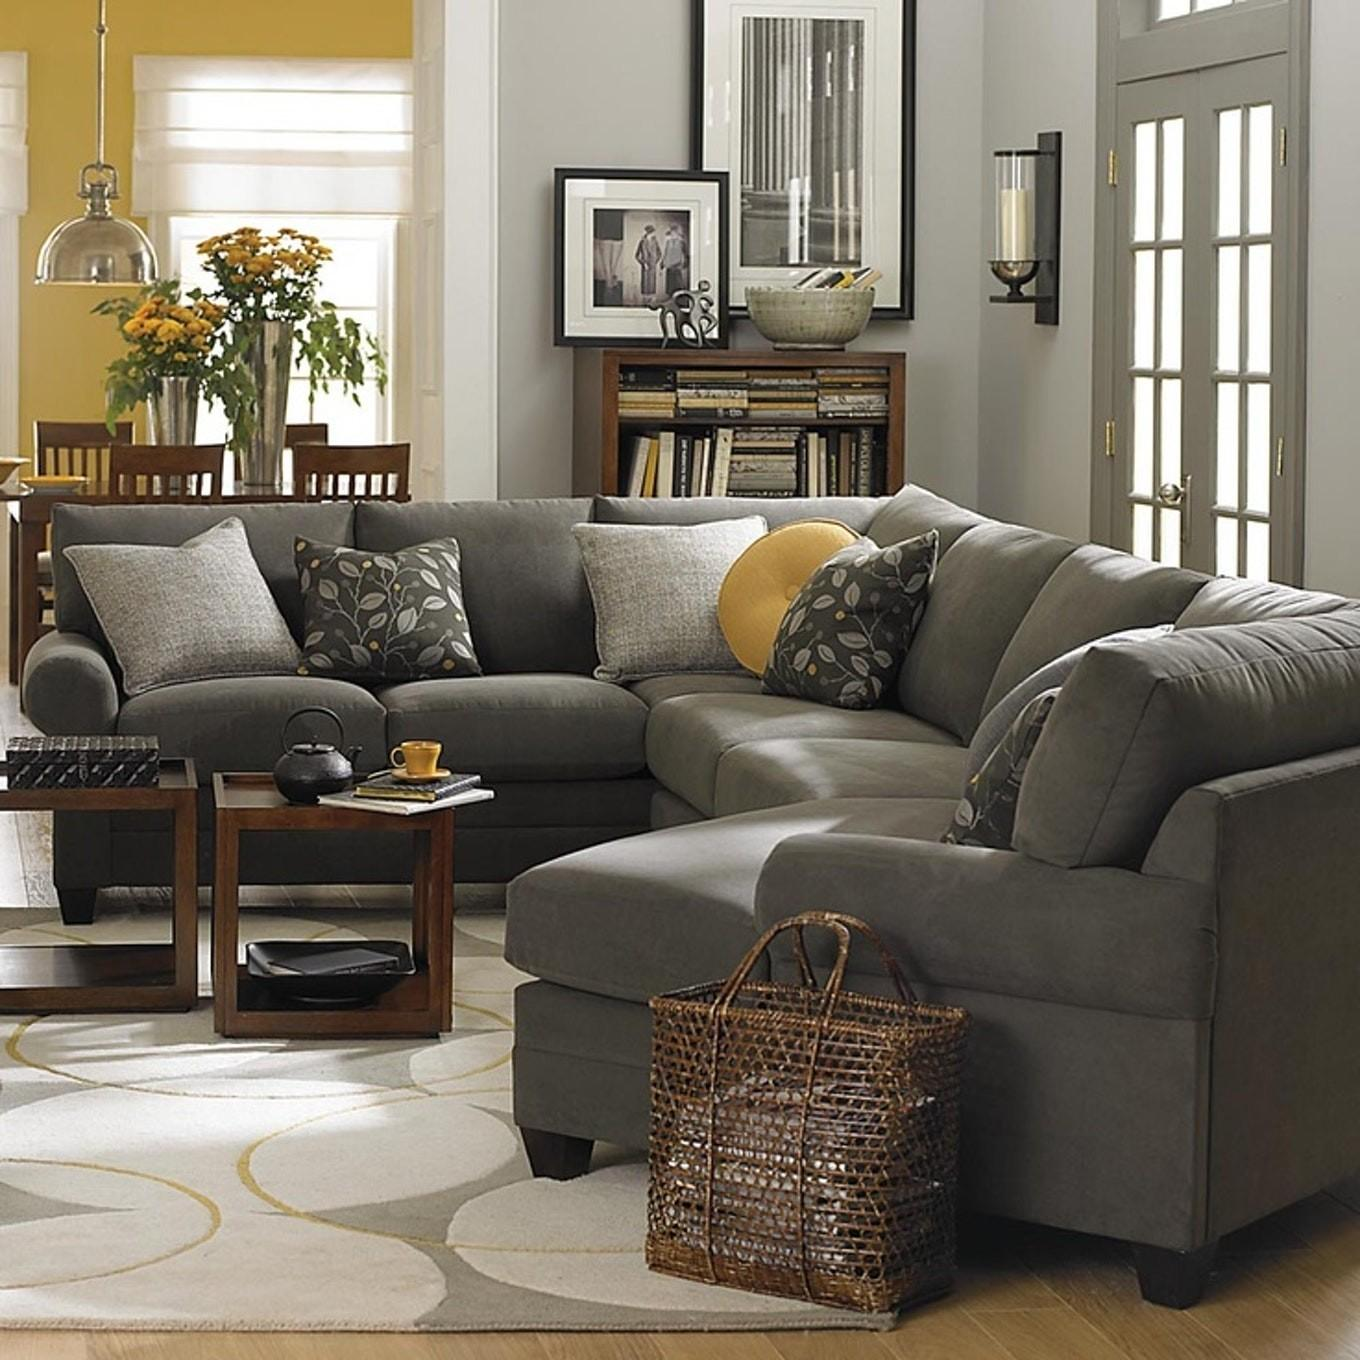 Black Gray Living Room Decorating Ideas Couch